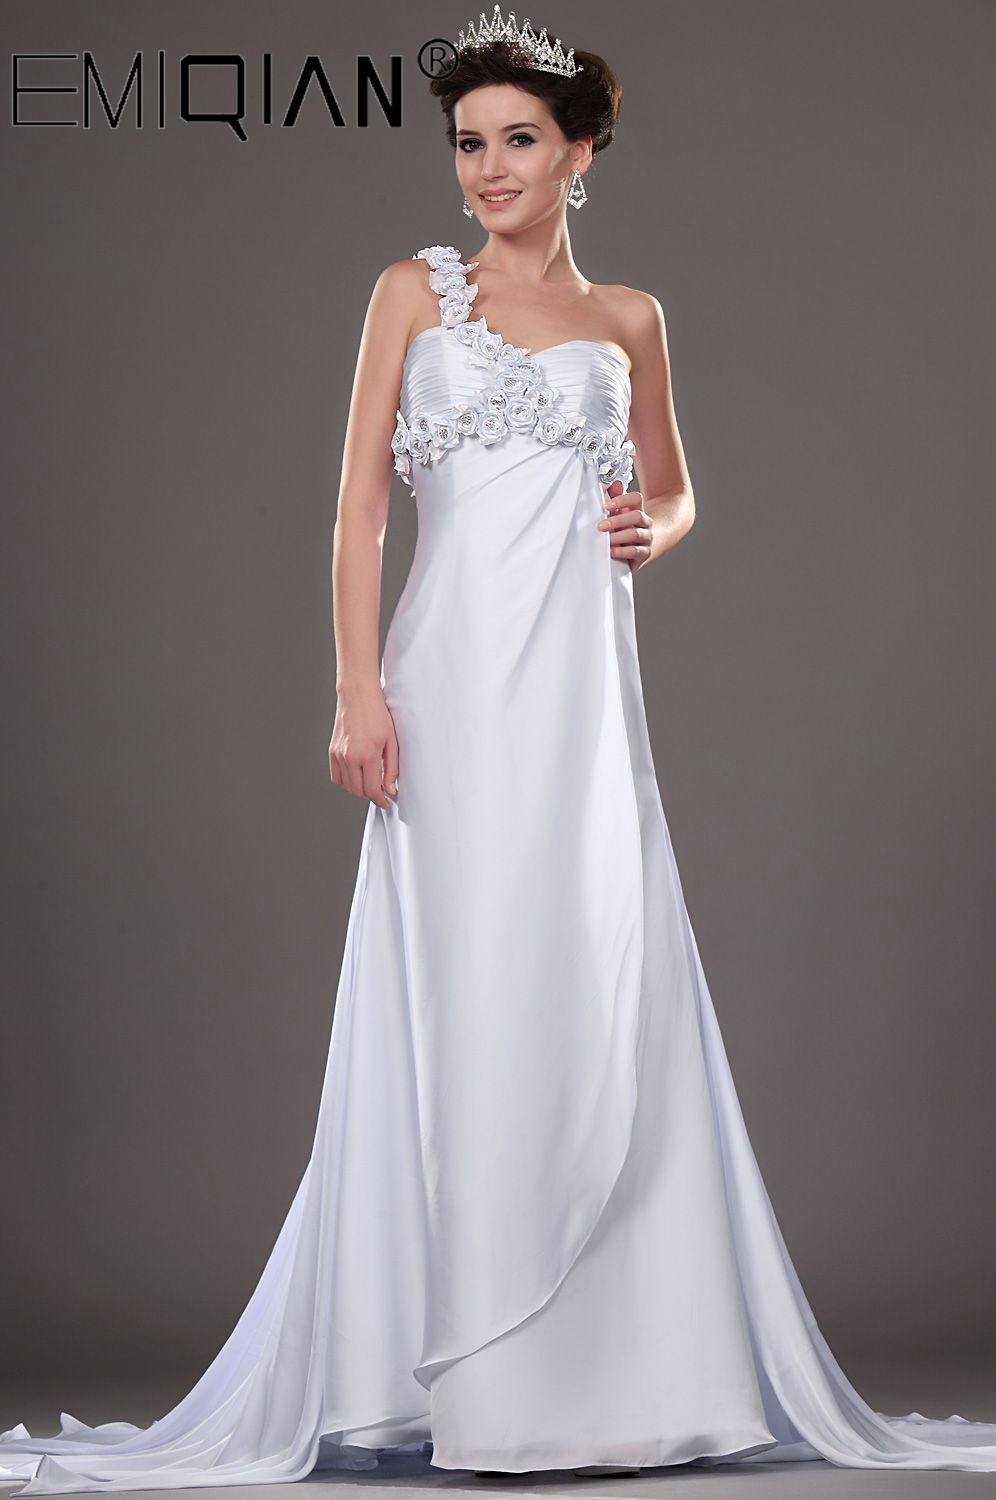 New Designer Custom Size/color Grecian Chiffon One Shoulder Bridal Gown Wedding Dress With Flowers